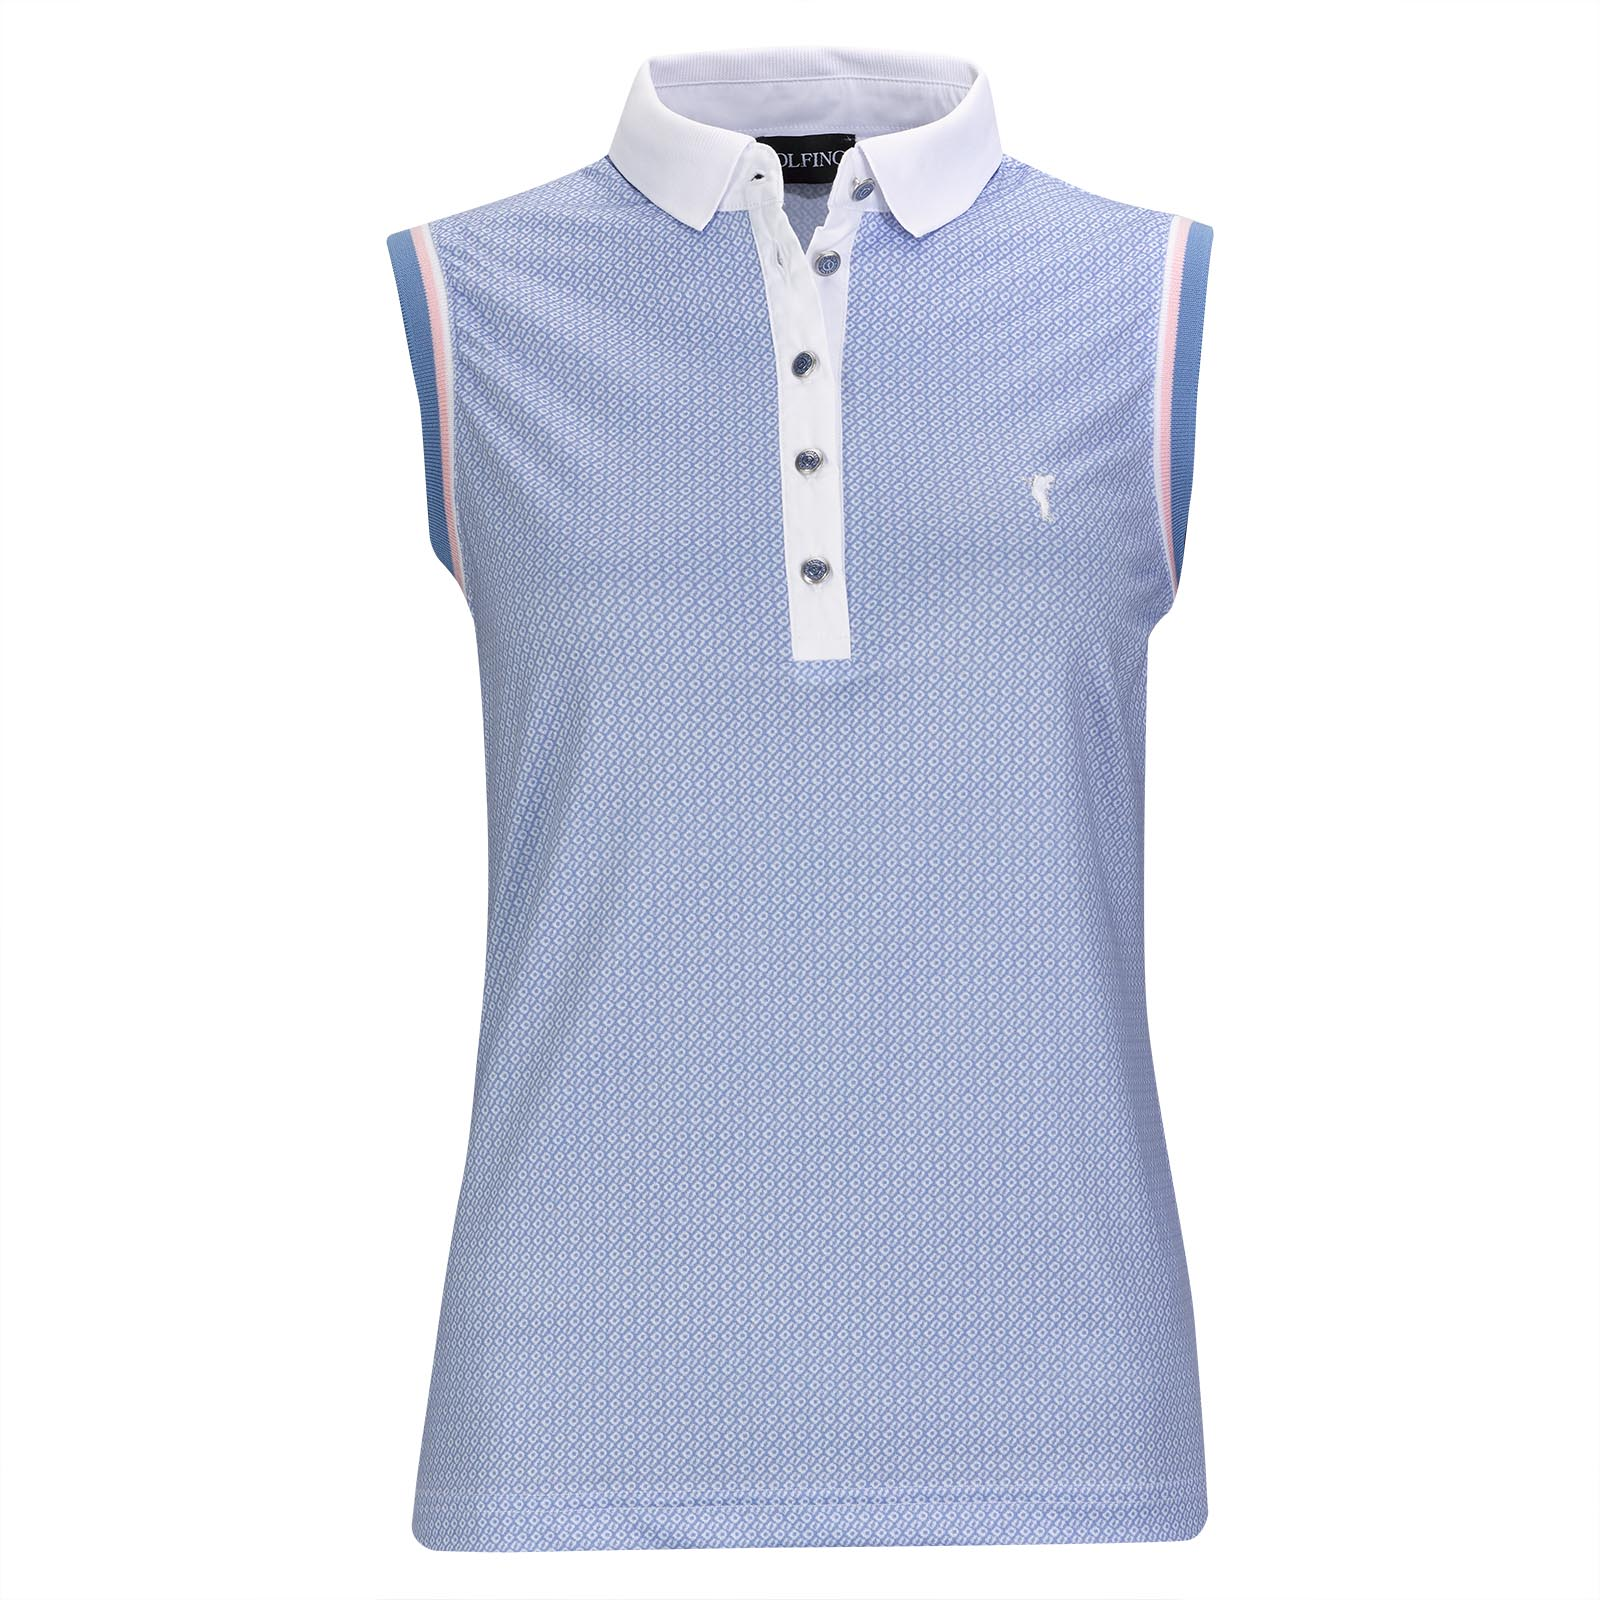 Sleeveless Ladies' functional Golf Polo with Moisture Management in slim fit